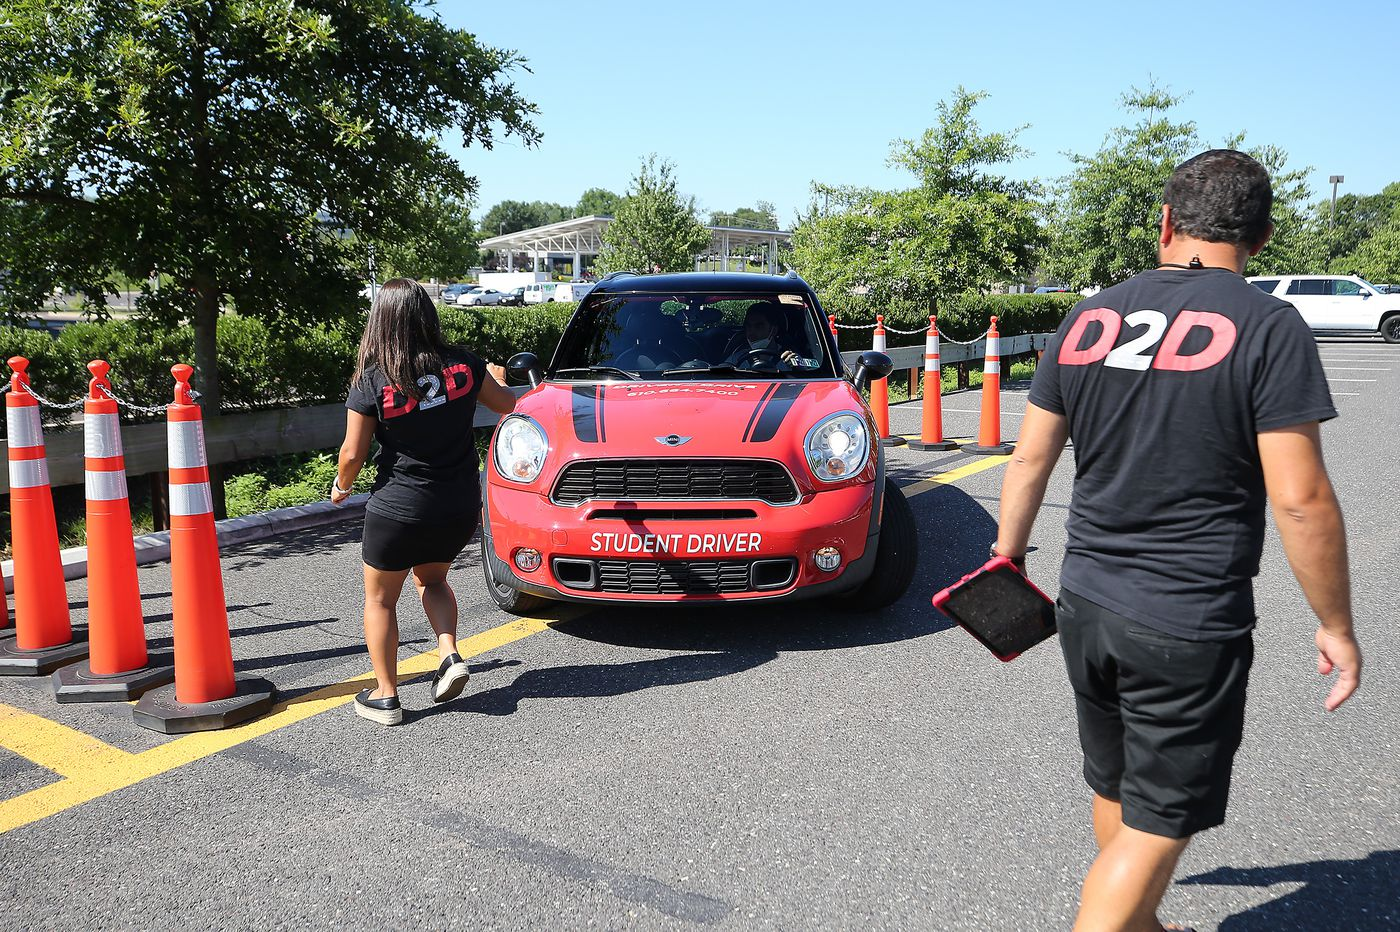 PennDOT to Resume Modified Driving Tests Tomorrow, Road Safety a Concern